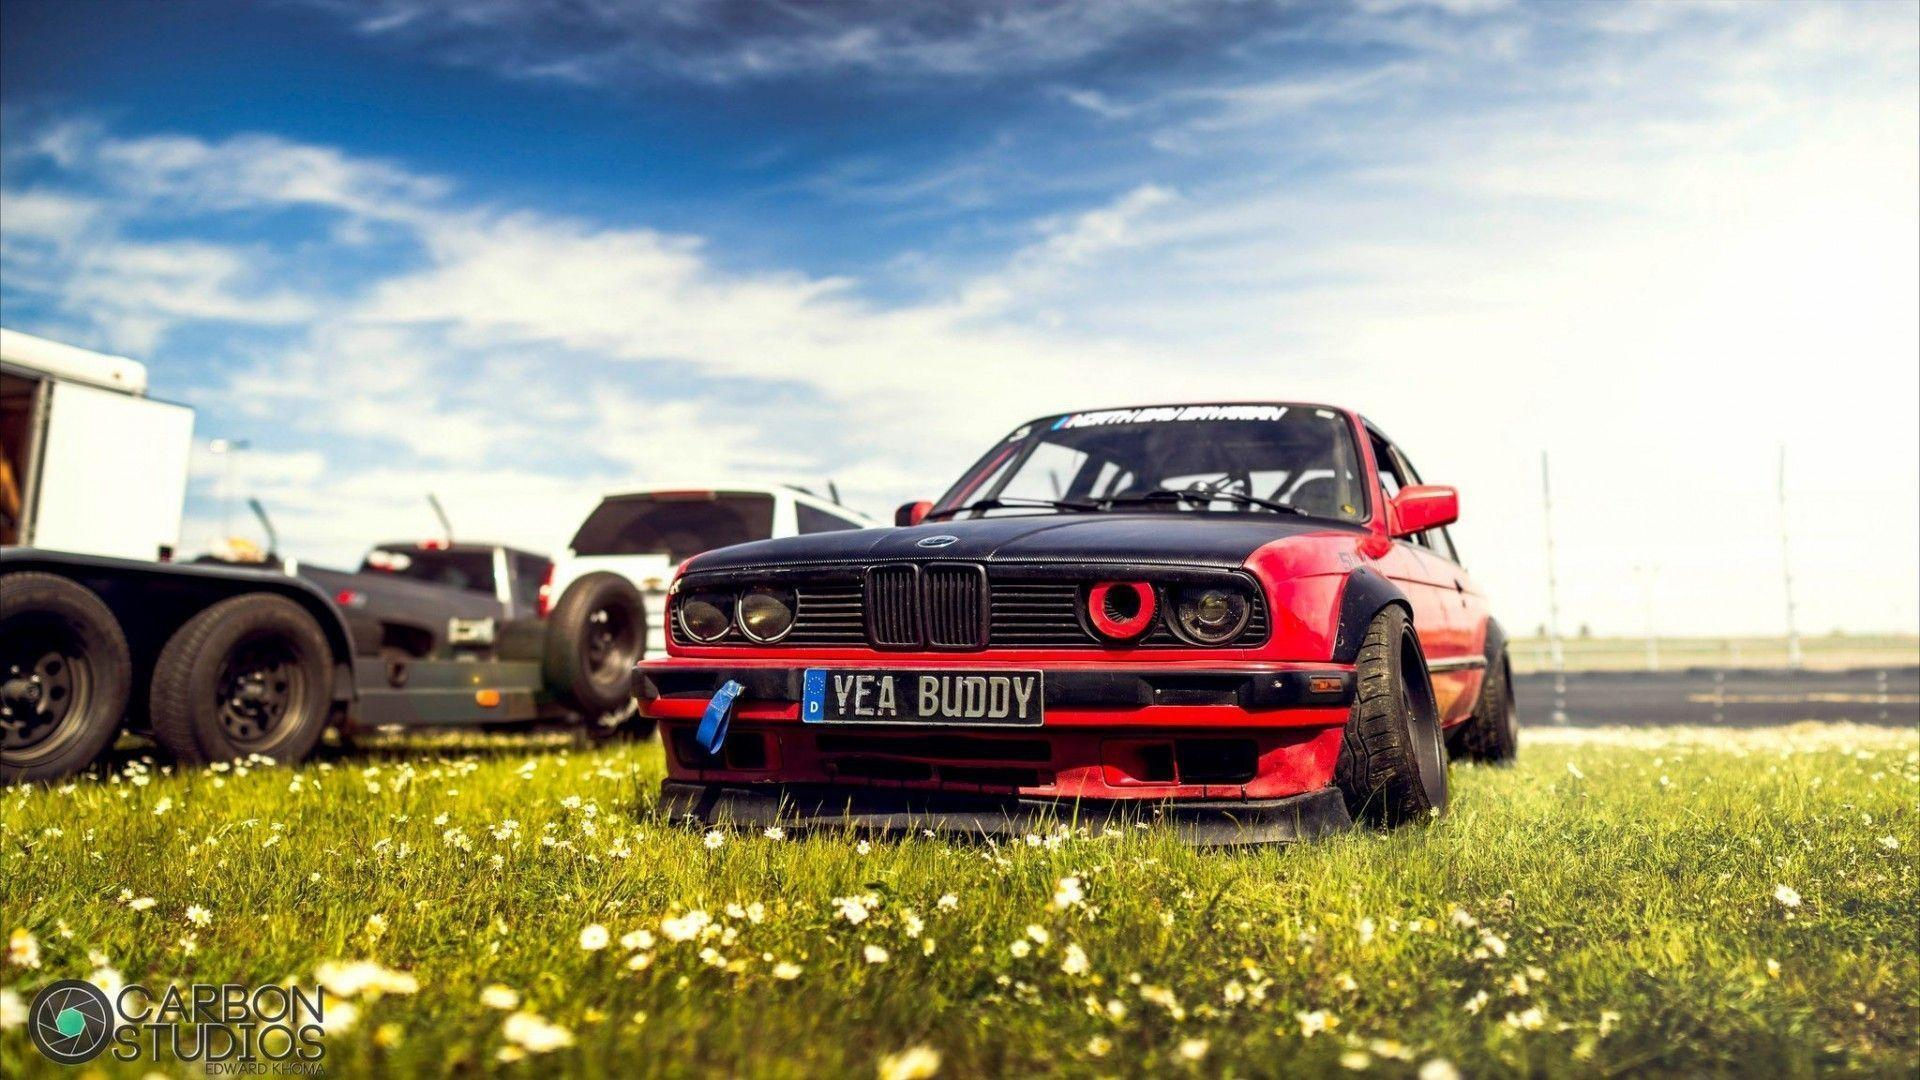 m3 e30 wallpapers android apps on google play source a· 2015 bmw e30 wallpaper cool hd 1895 wallpaper wallawy